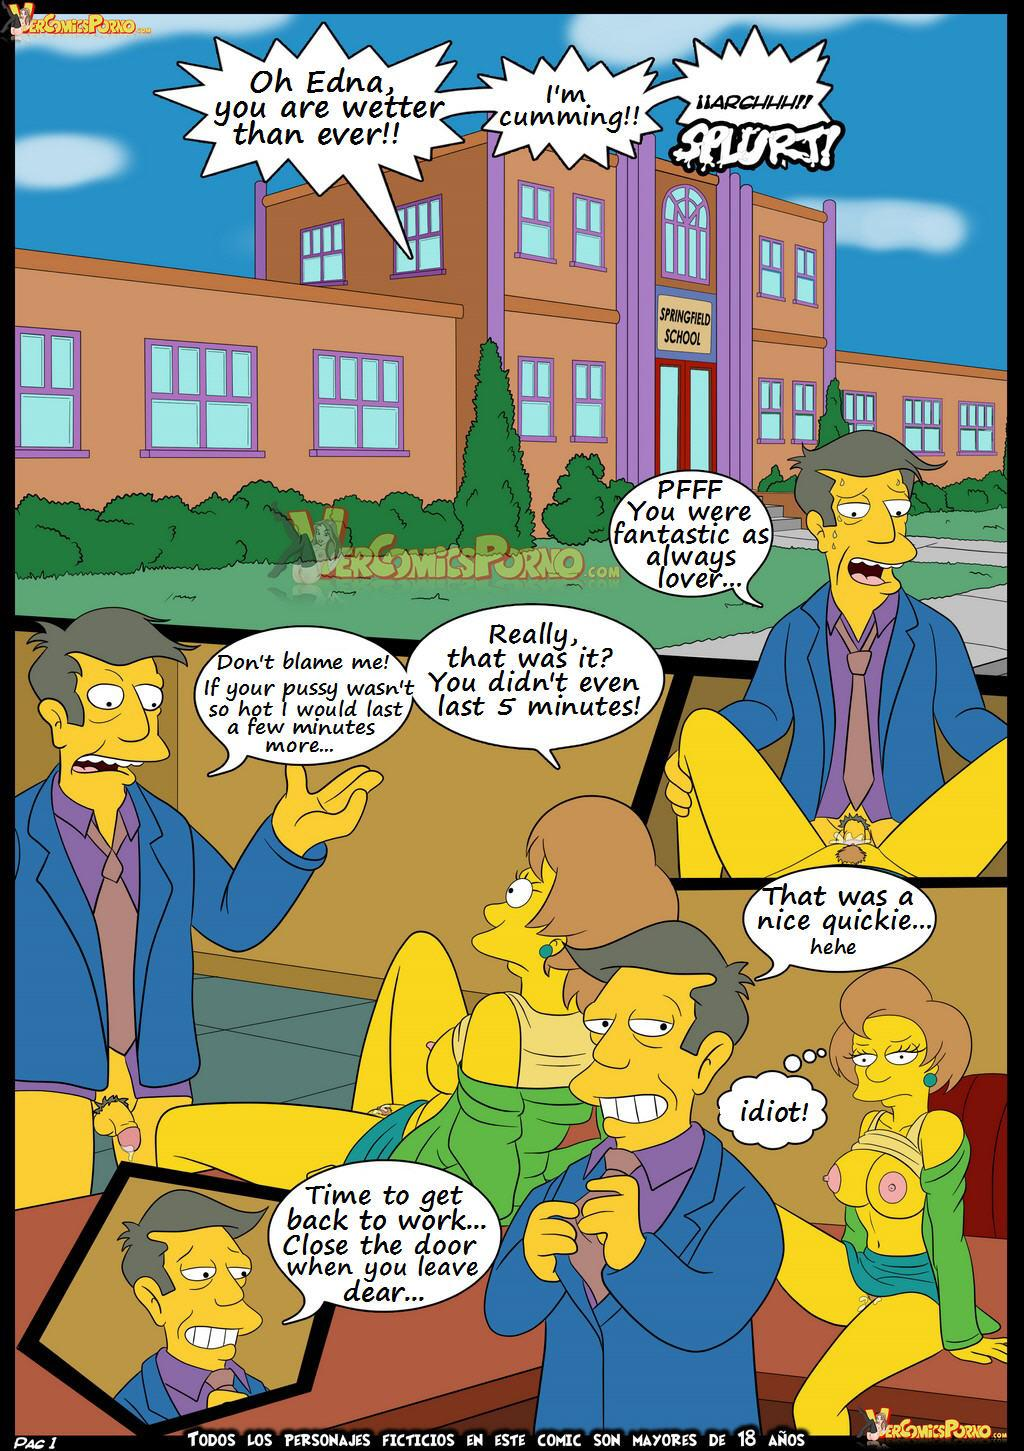 2 45 - The Simpsons. Part 5.